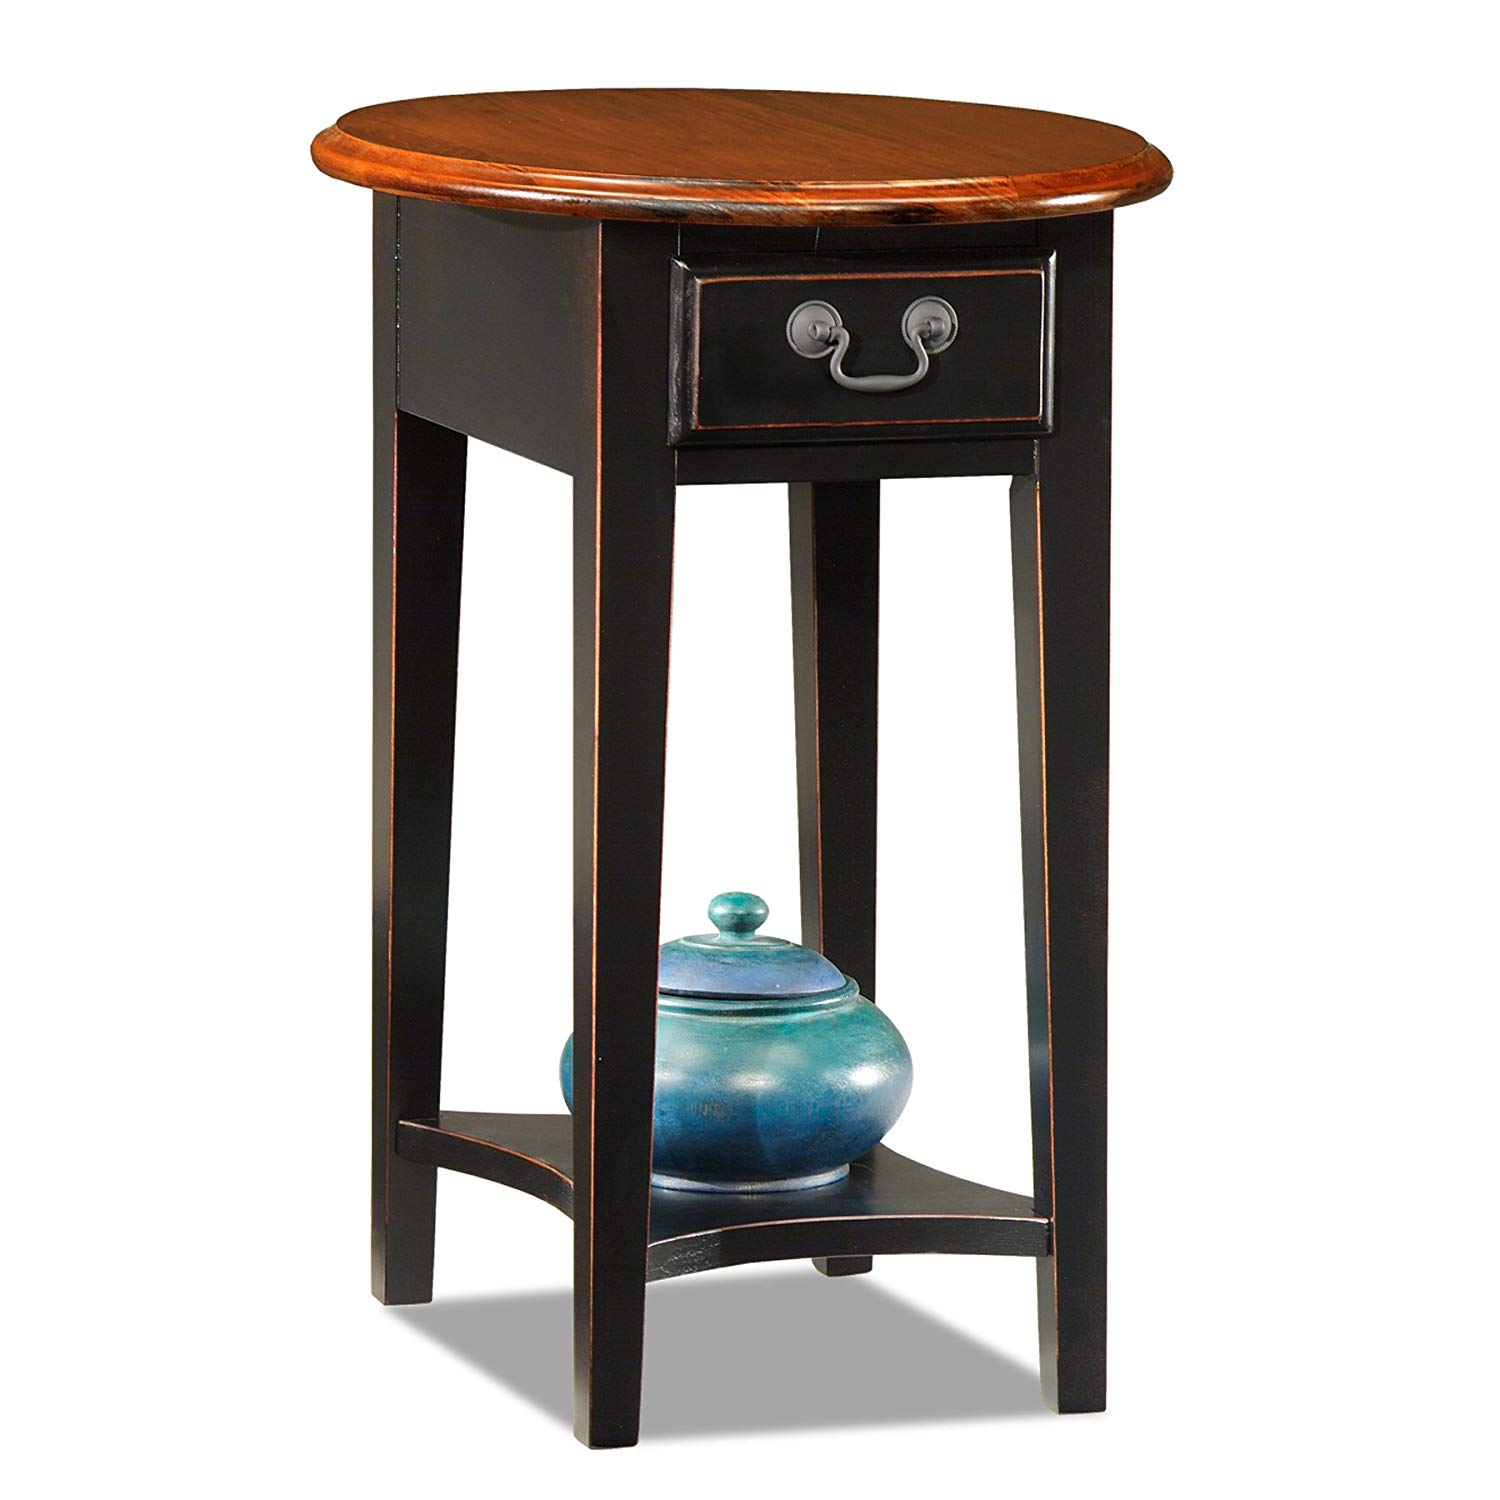 leick oval end table slate black kitchen dining inside small tables for living room plan white accent target blue chair unique bedside perspex cube storage cabinets furniture pier